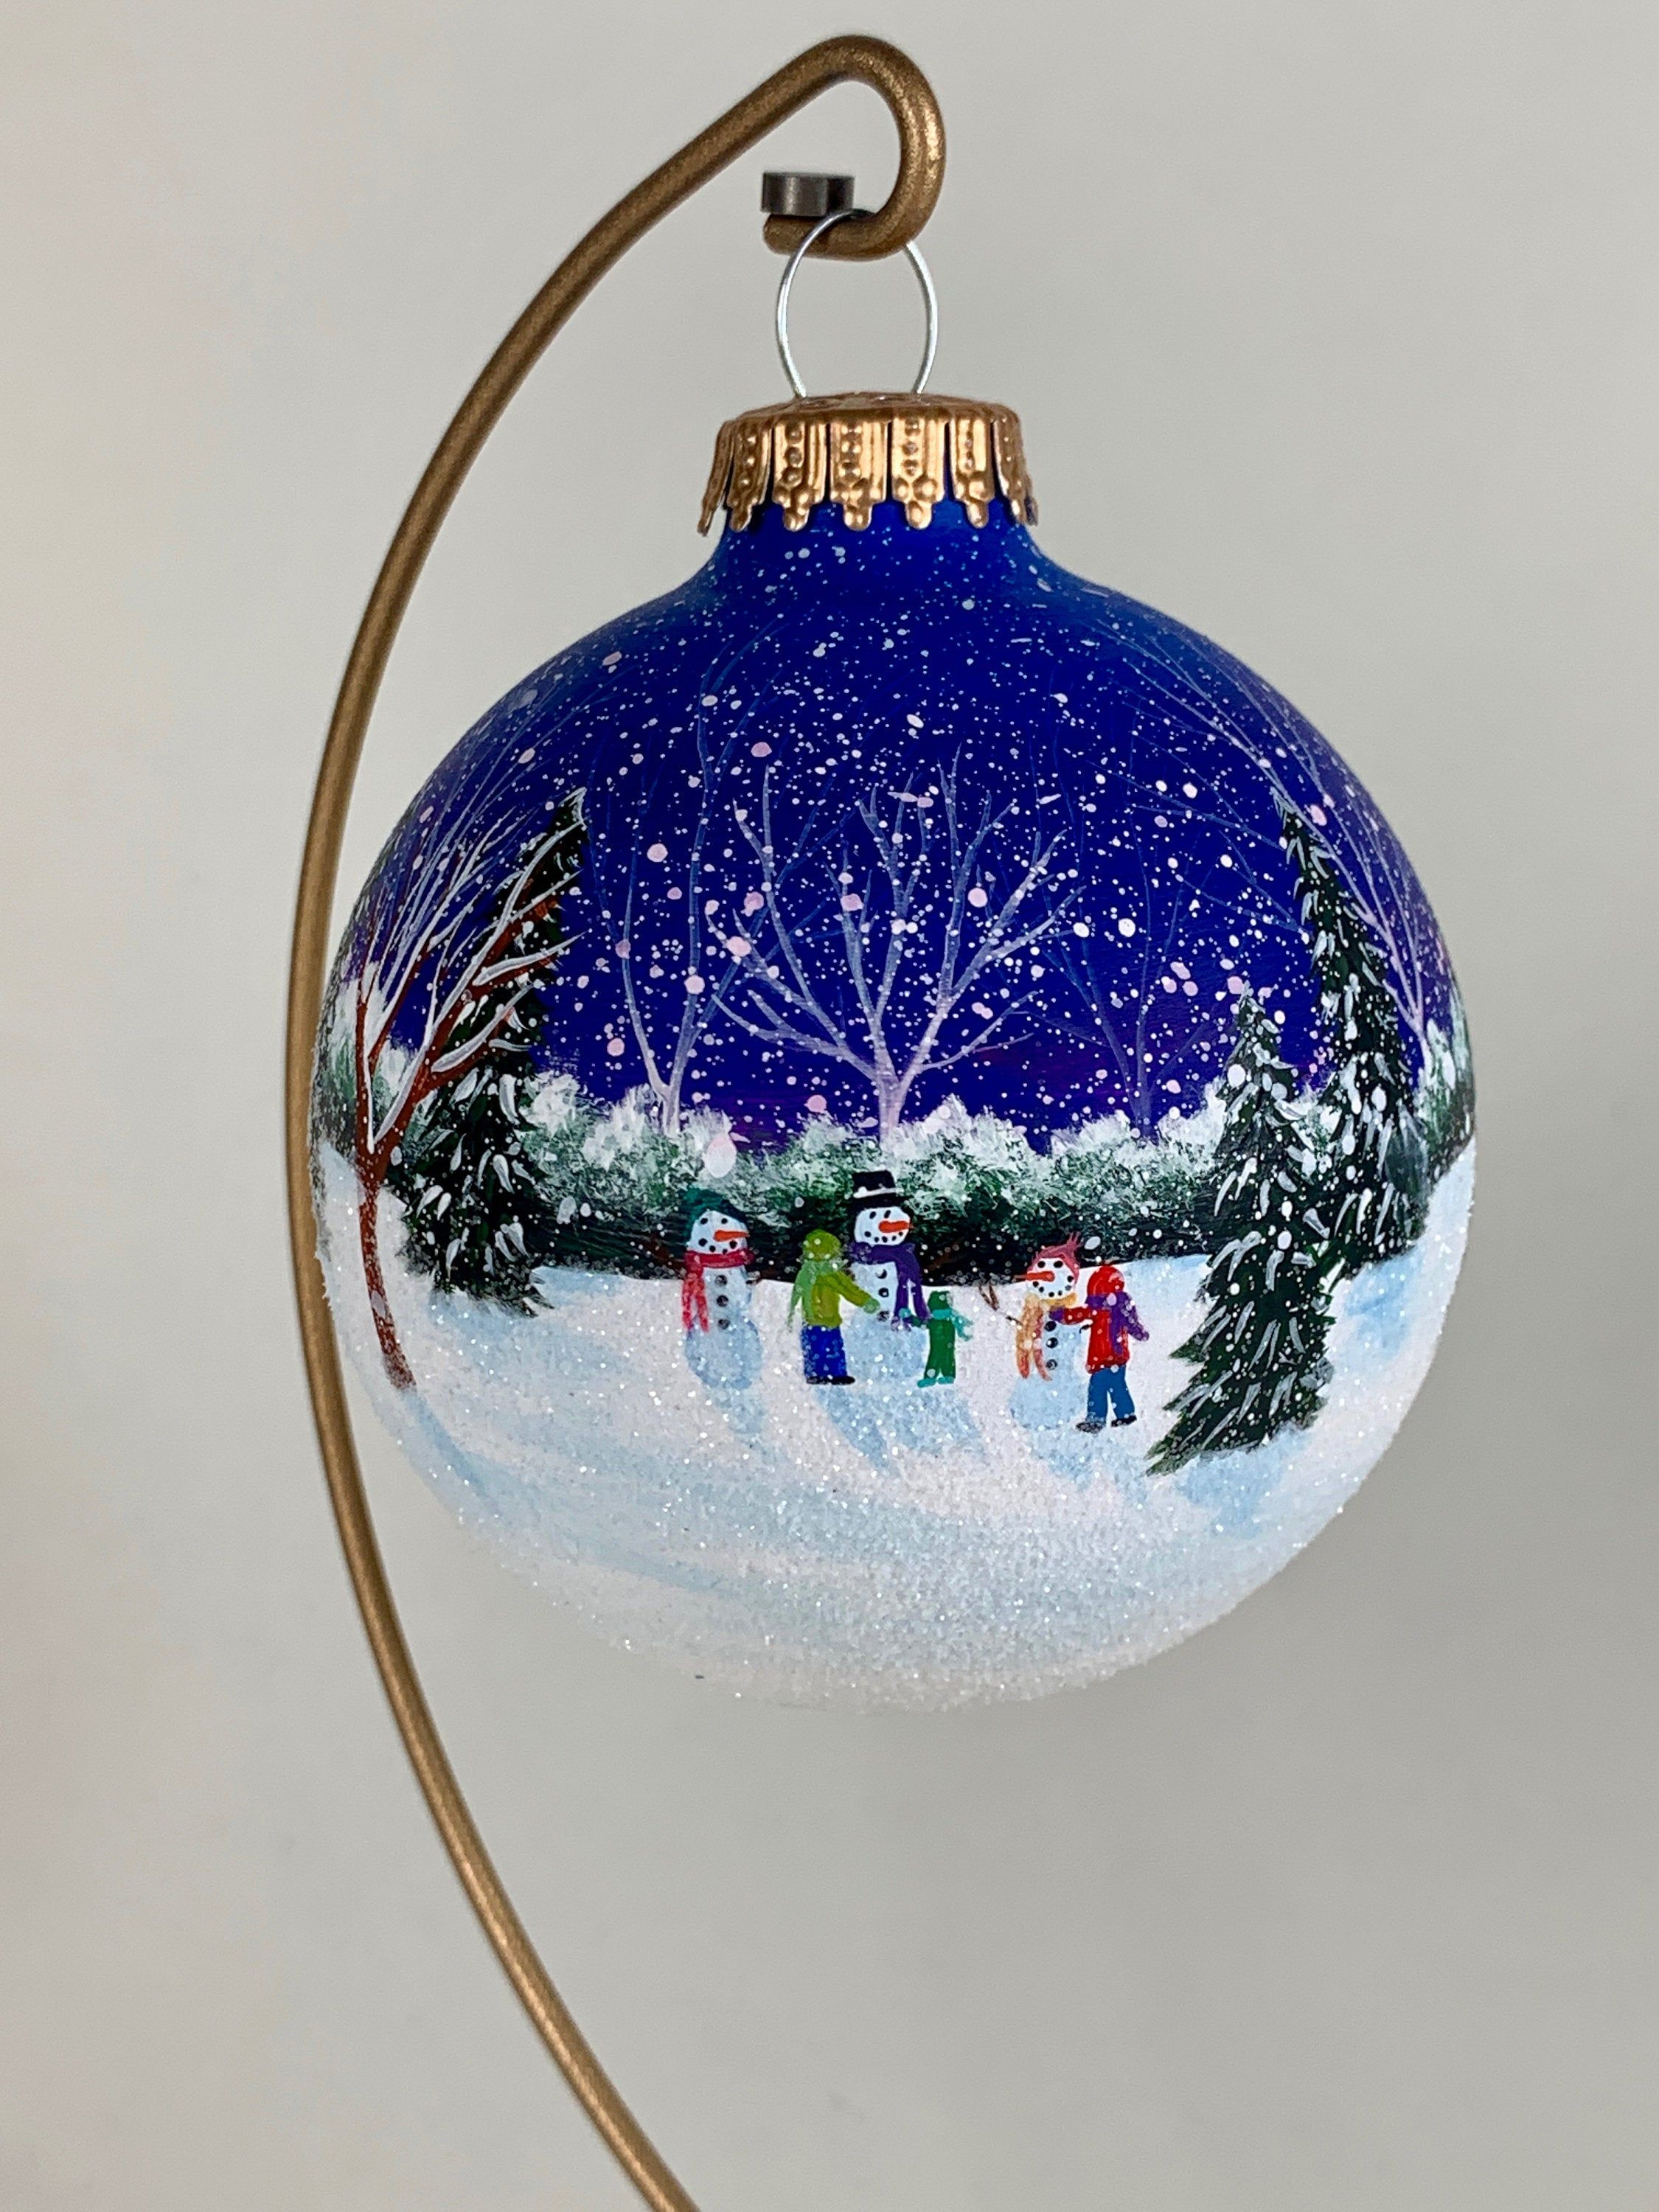 Three Children Building Snowmen In Snowy Winter Landscape Etsy In 2020 Christmas Ornaments Handpainted Christmas Ornaments Painted Christmas Ornaments